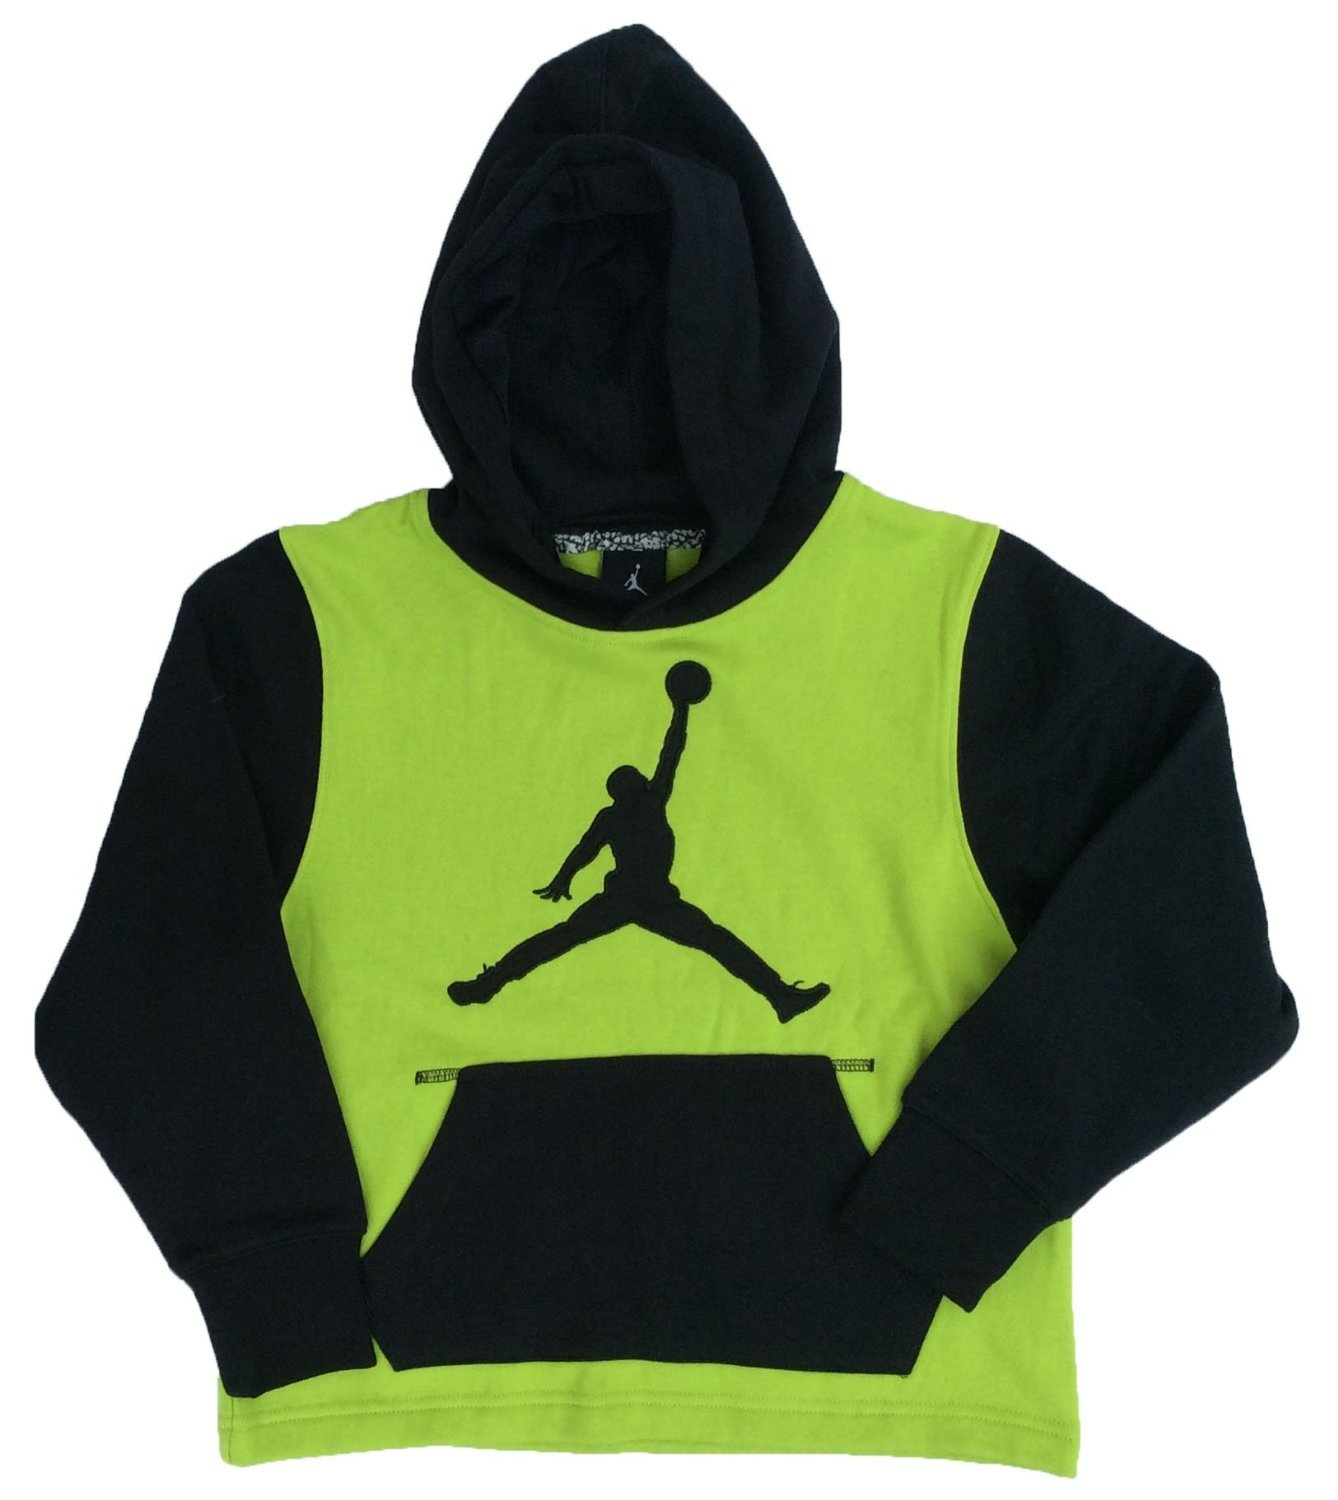 Jordan Big Boys ' (8 – 20 ) Nike Jumpmanプルオーバーパーカー(X L) (XL、明るい緑) B019BH9BLG